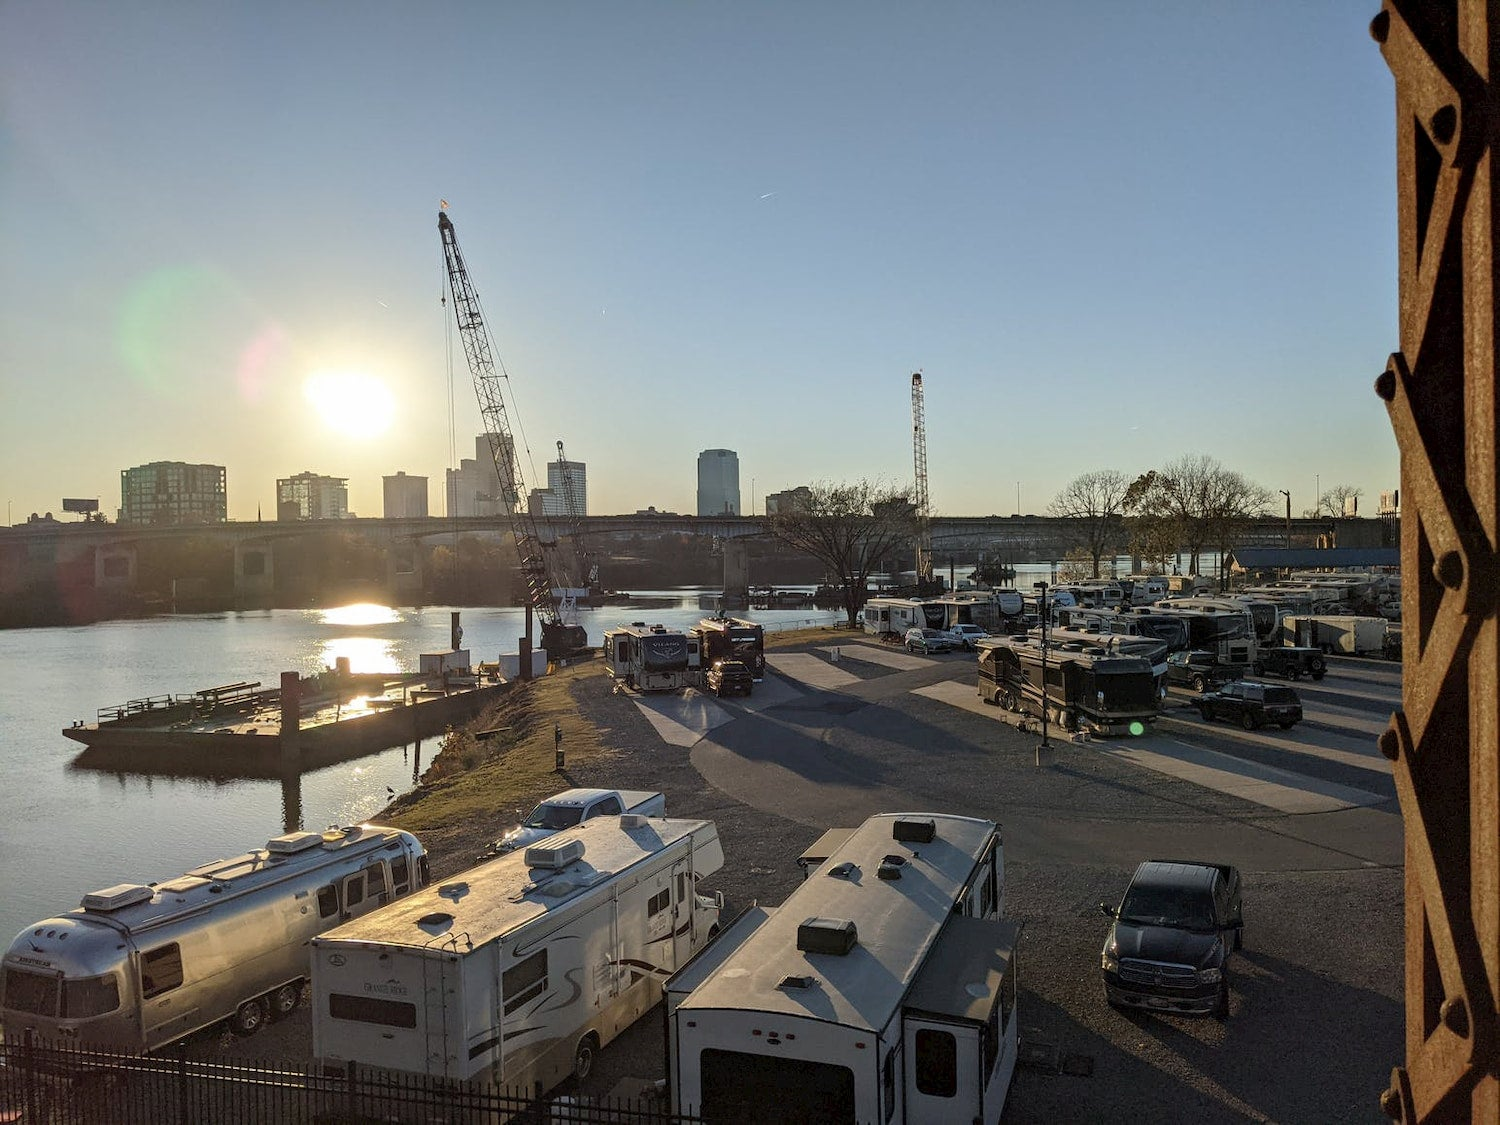 RV park near river with skyline in the background